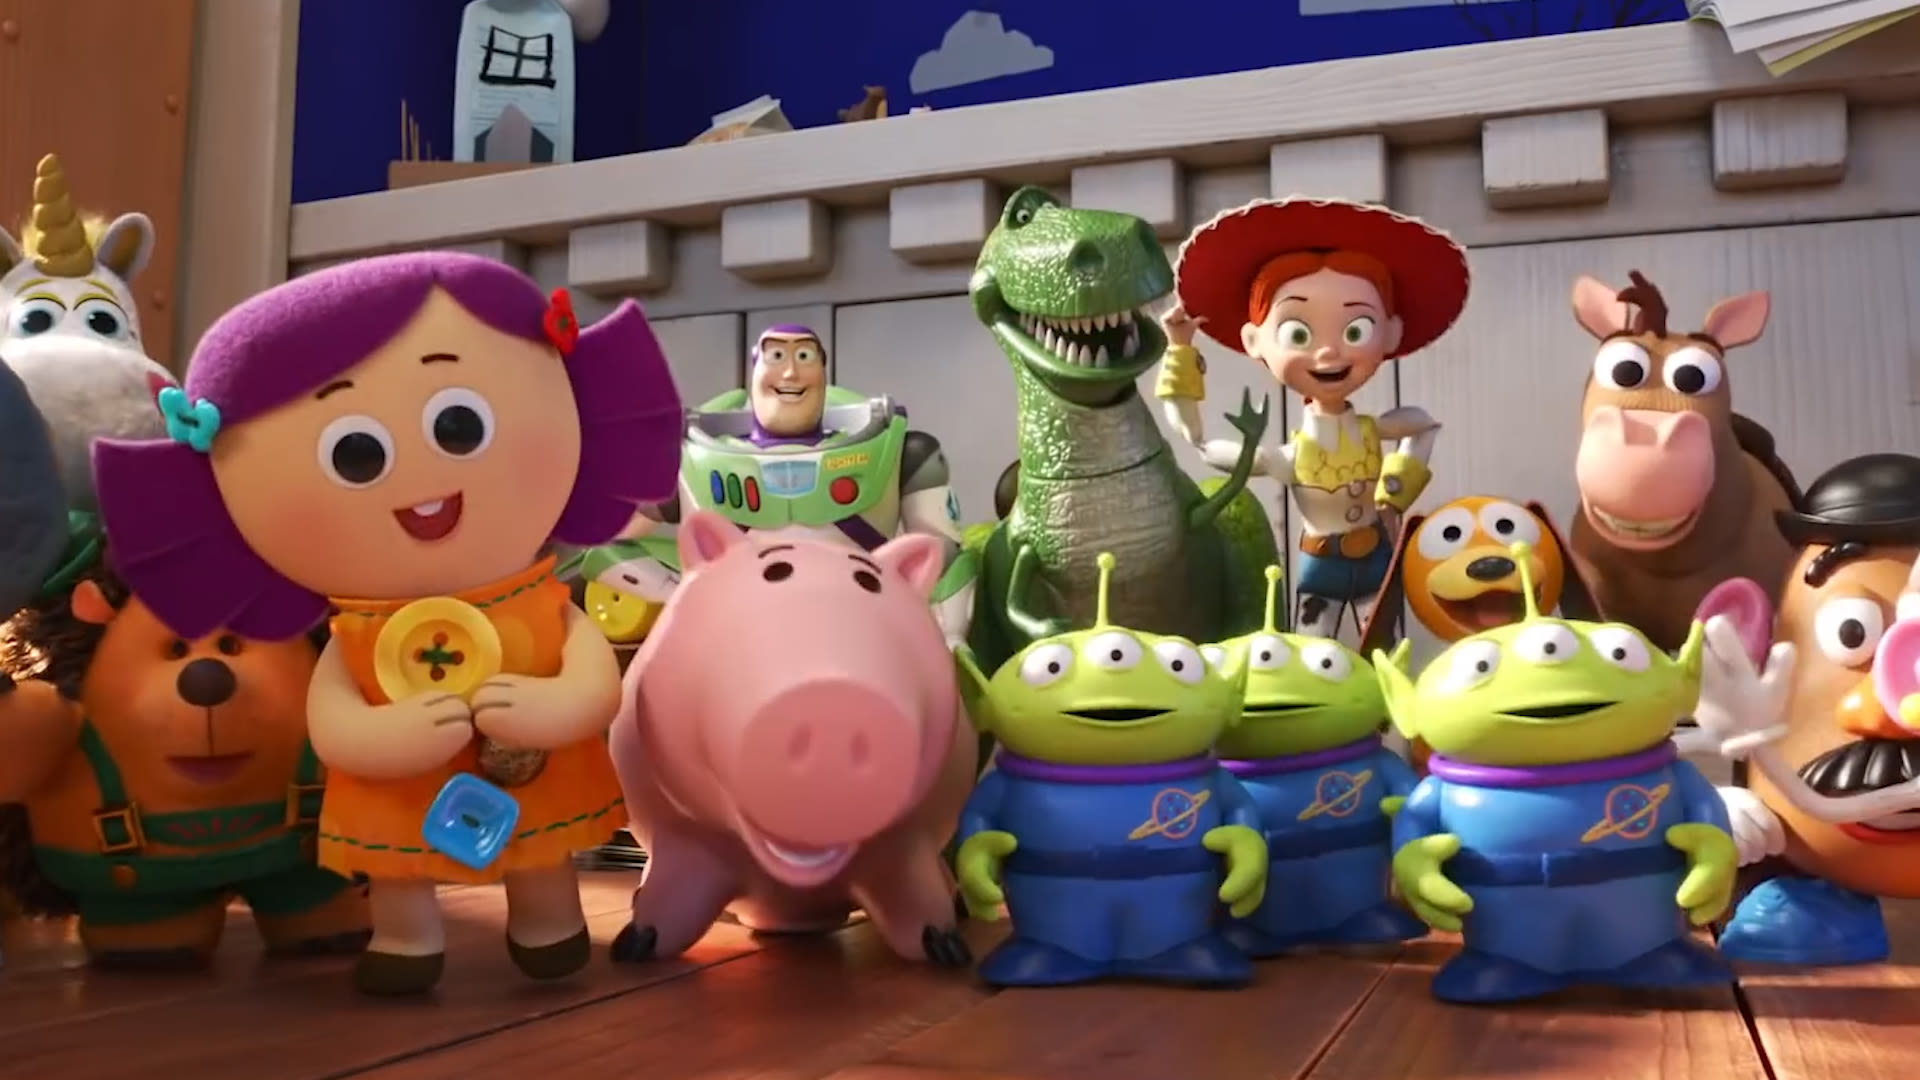 'Toy Story 4': All the stars who voice characters in Pixar's latest film